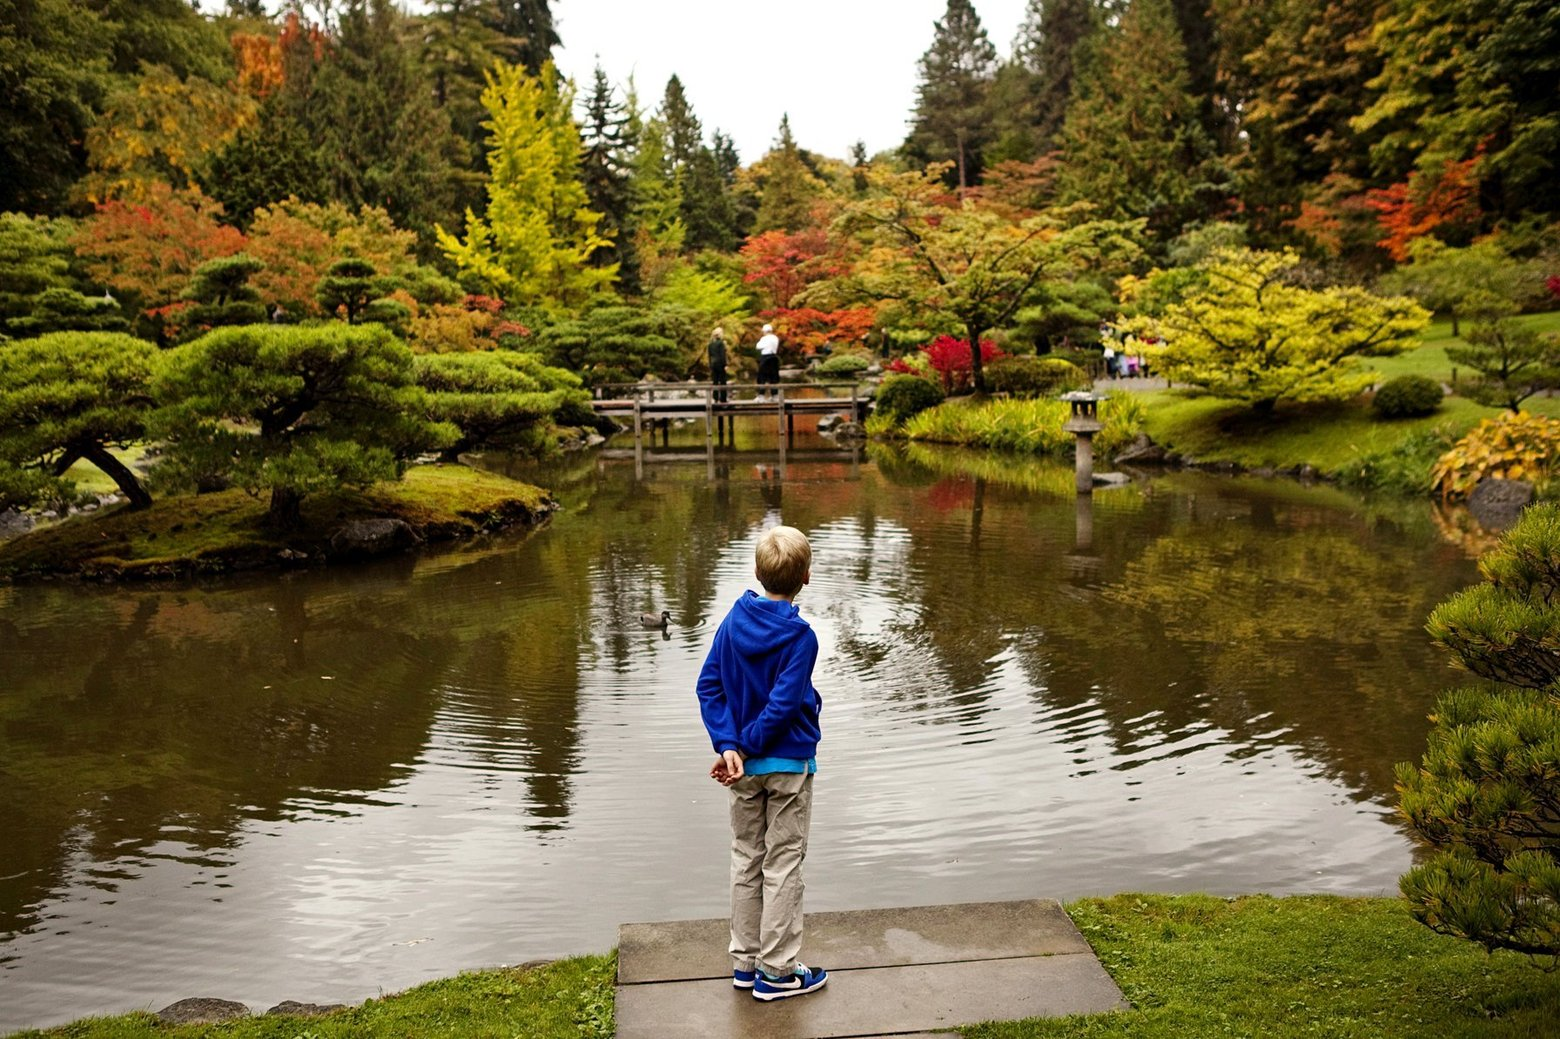 Fall foliage at Seattle Japanese Garden | The Seattle Times